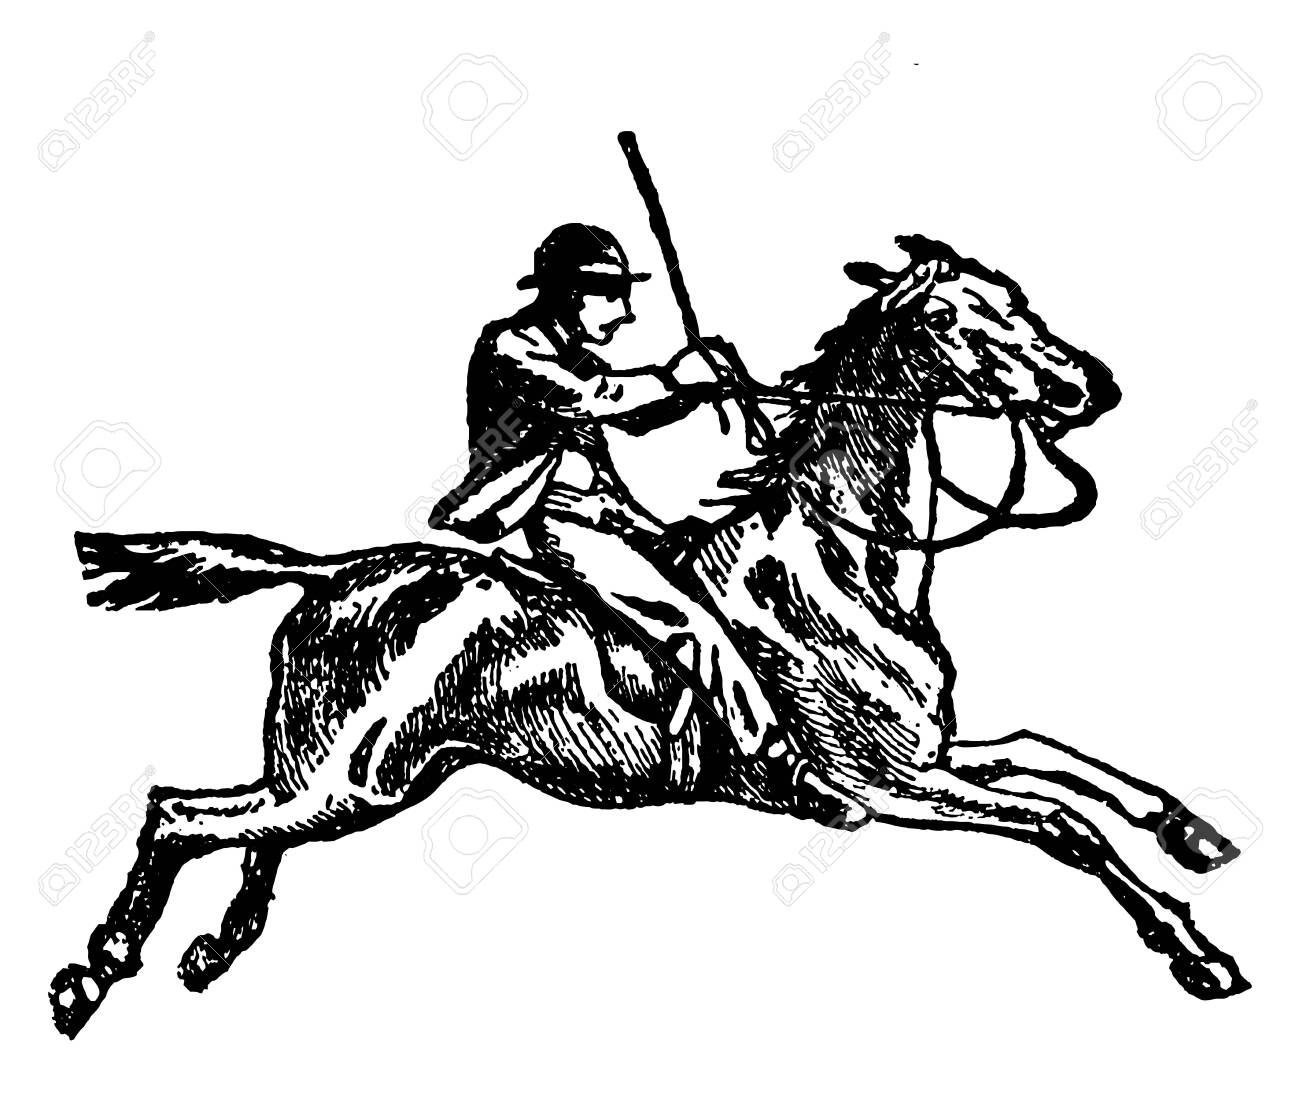 This Is An Awkward Position Of Horse Riding Vintage Line Drawing Royalty Free Cliparts Vectors And Stock Illustration Image 133063497